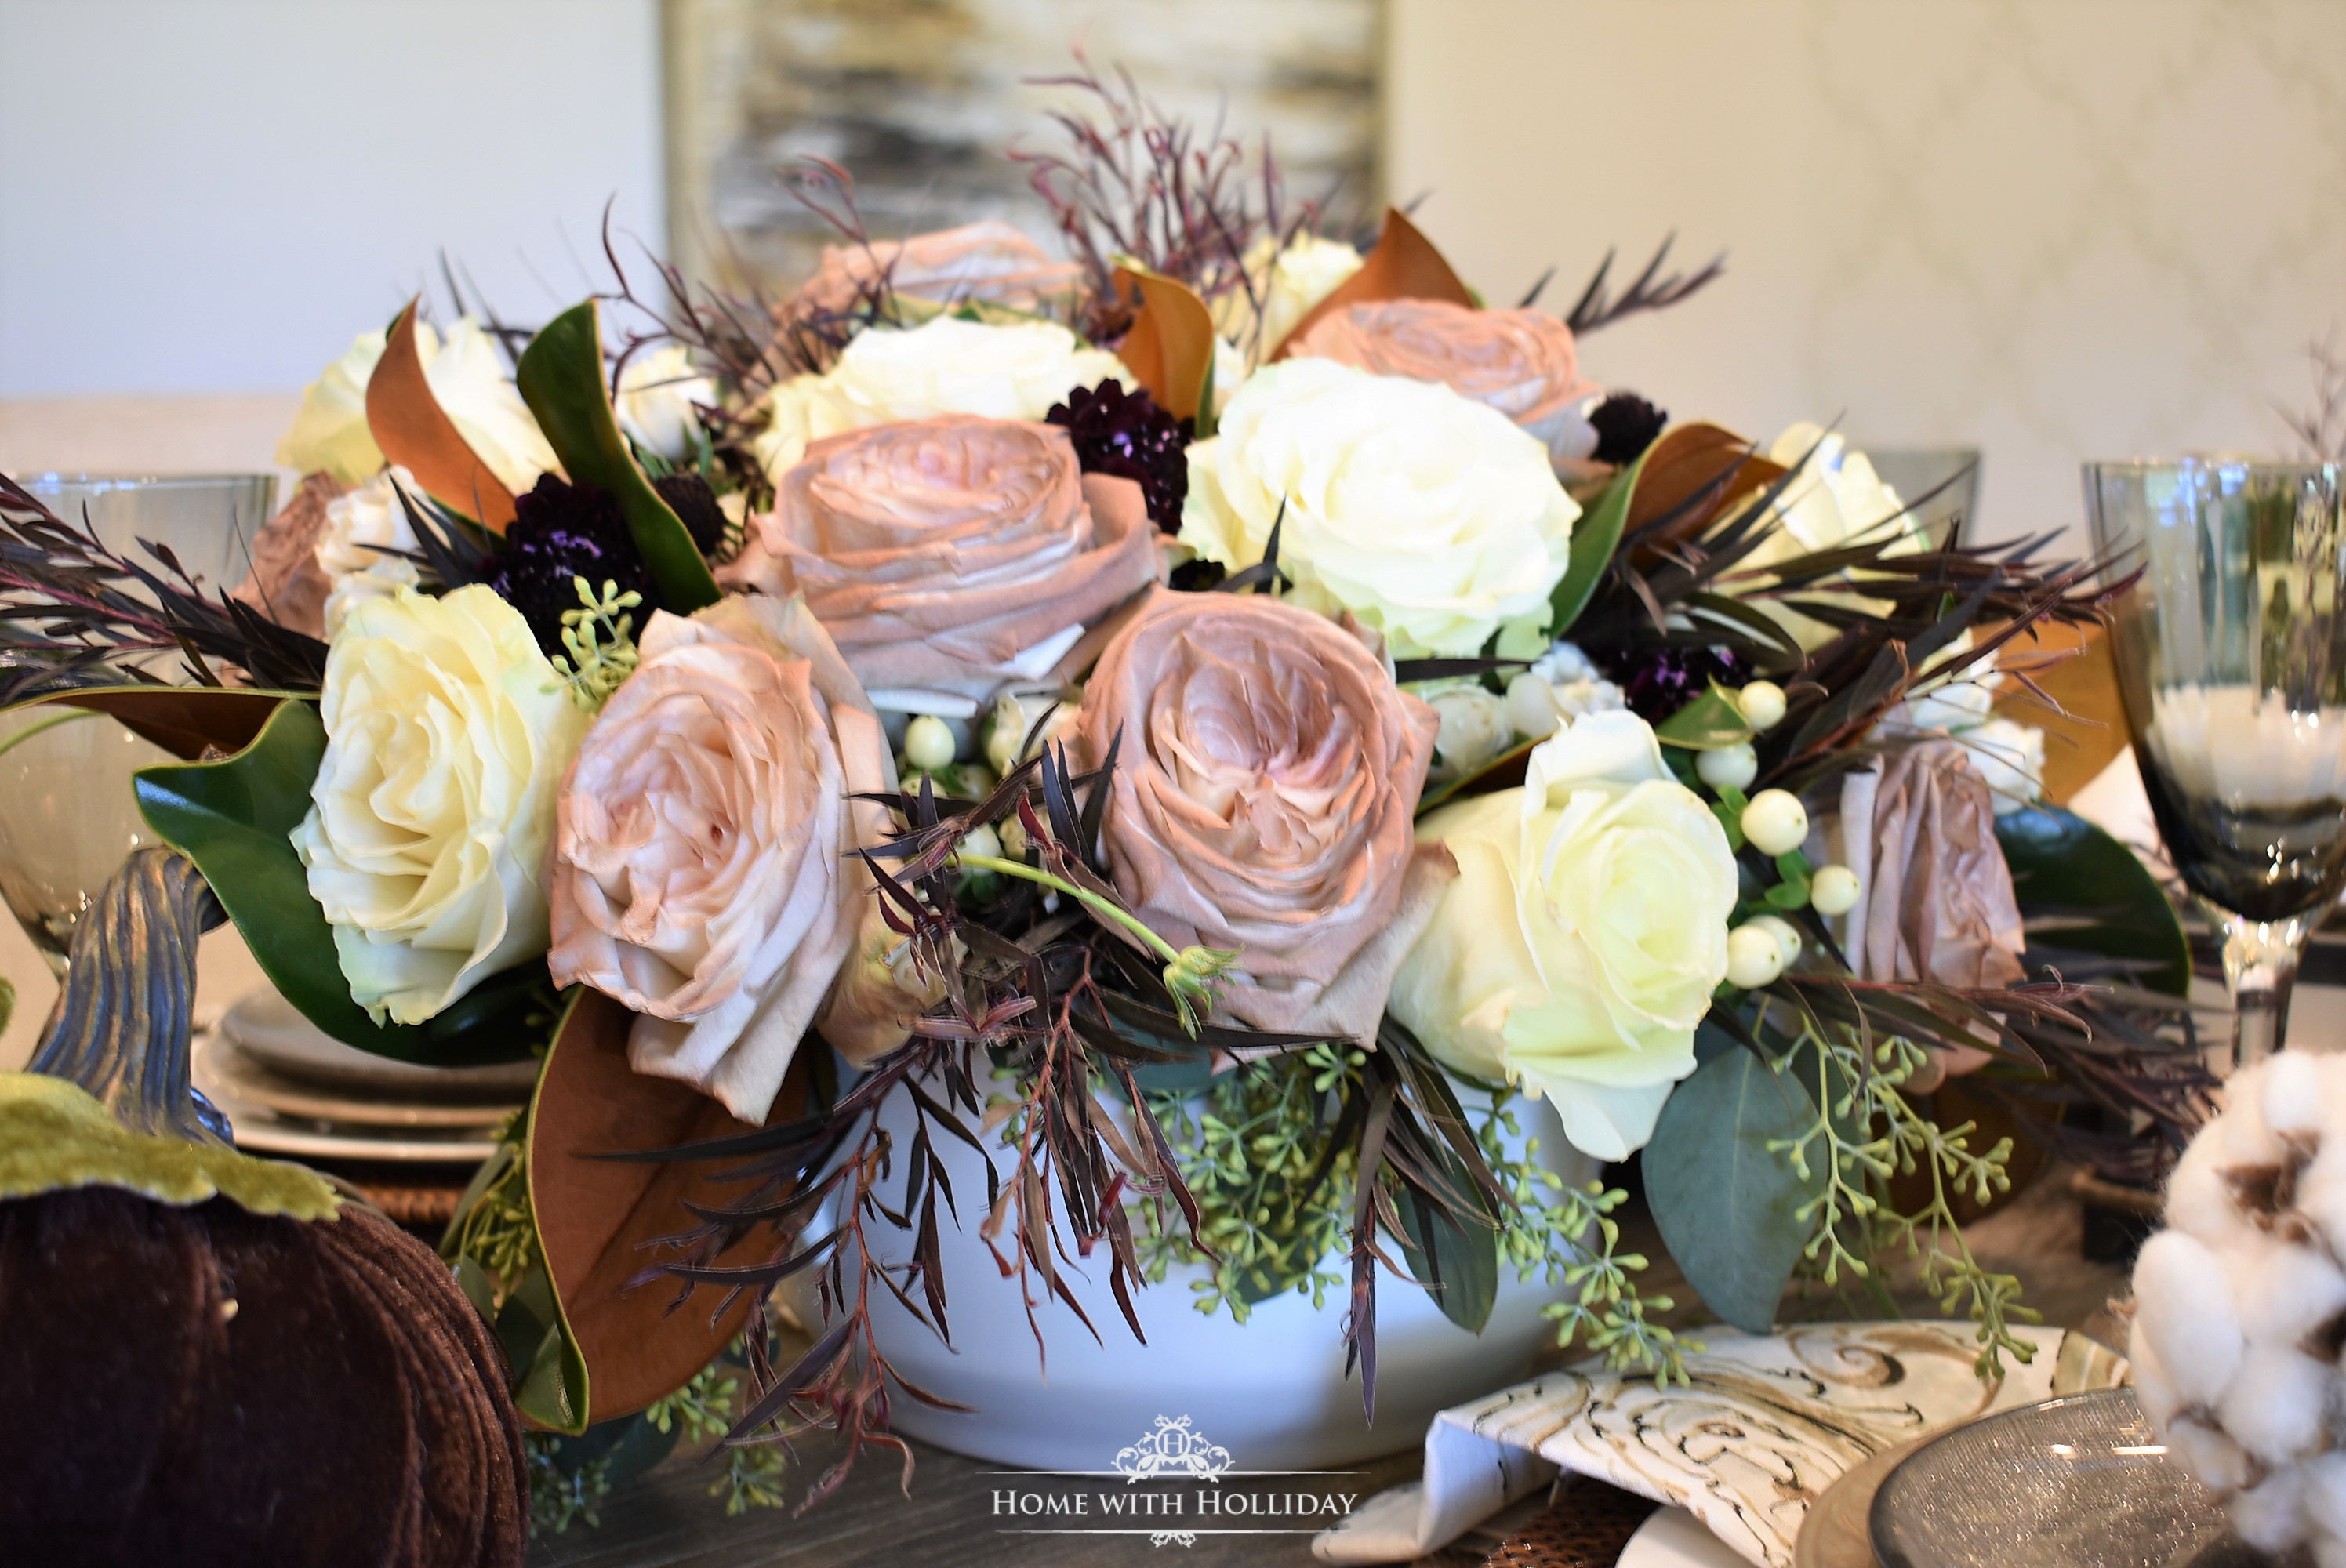 Fall Table Setting with Brown and White Pumpkins - The Flowers